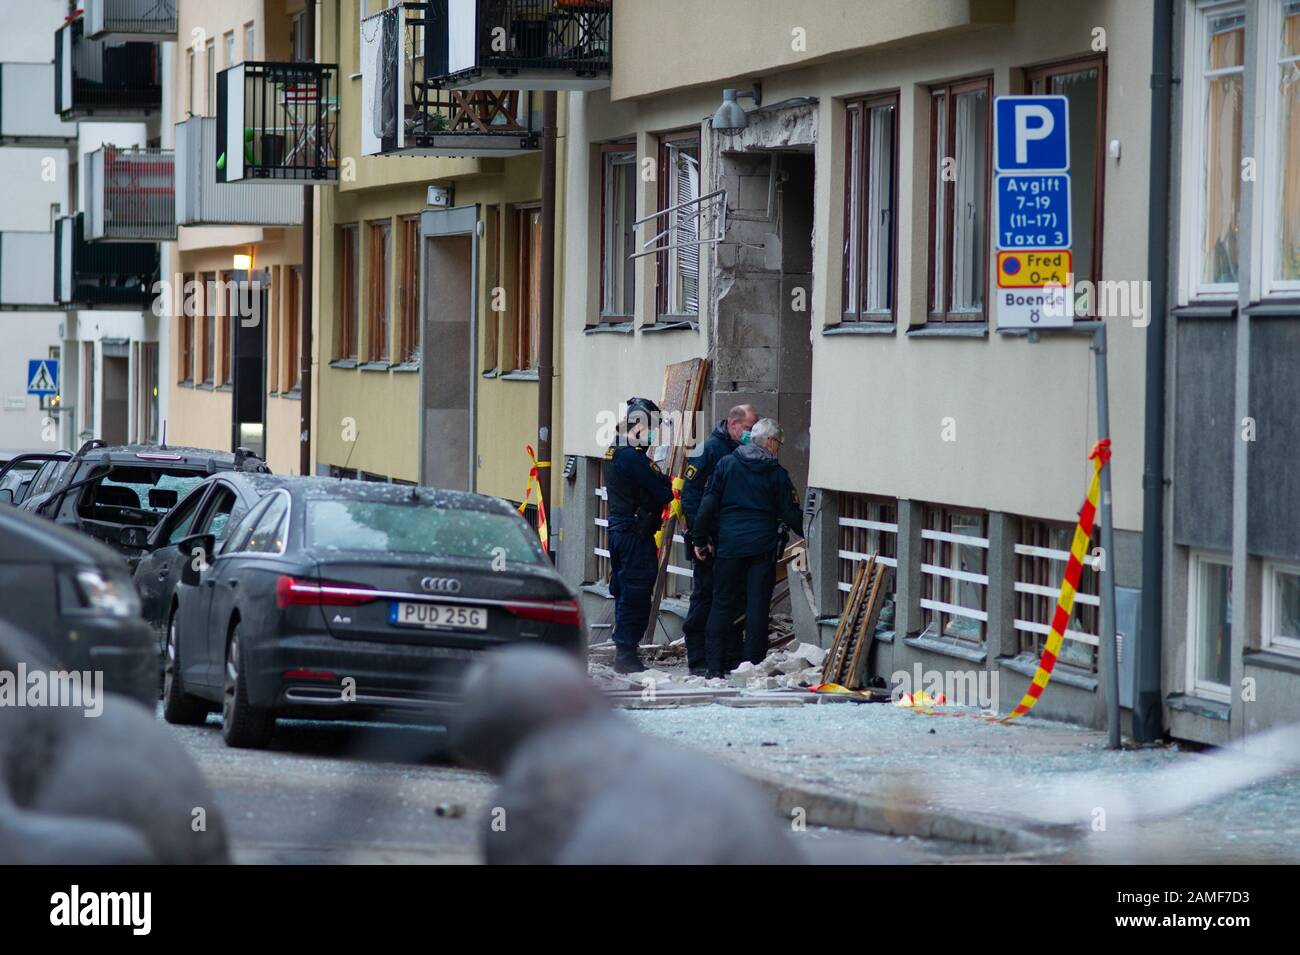 Stockholm, Sweden, January 13, 2020. Explosion in Stockholm, Sweden tonight. A very powerful explosion occurred at a multi-family house on Östermalm in Stockholm the night before Monday. The gate and cars were completely destroyed and several people were evacuated. Stock Photo